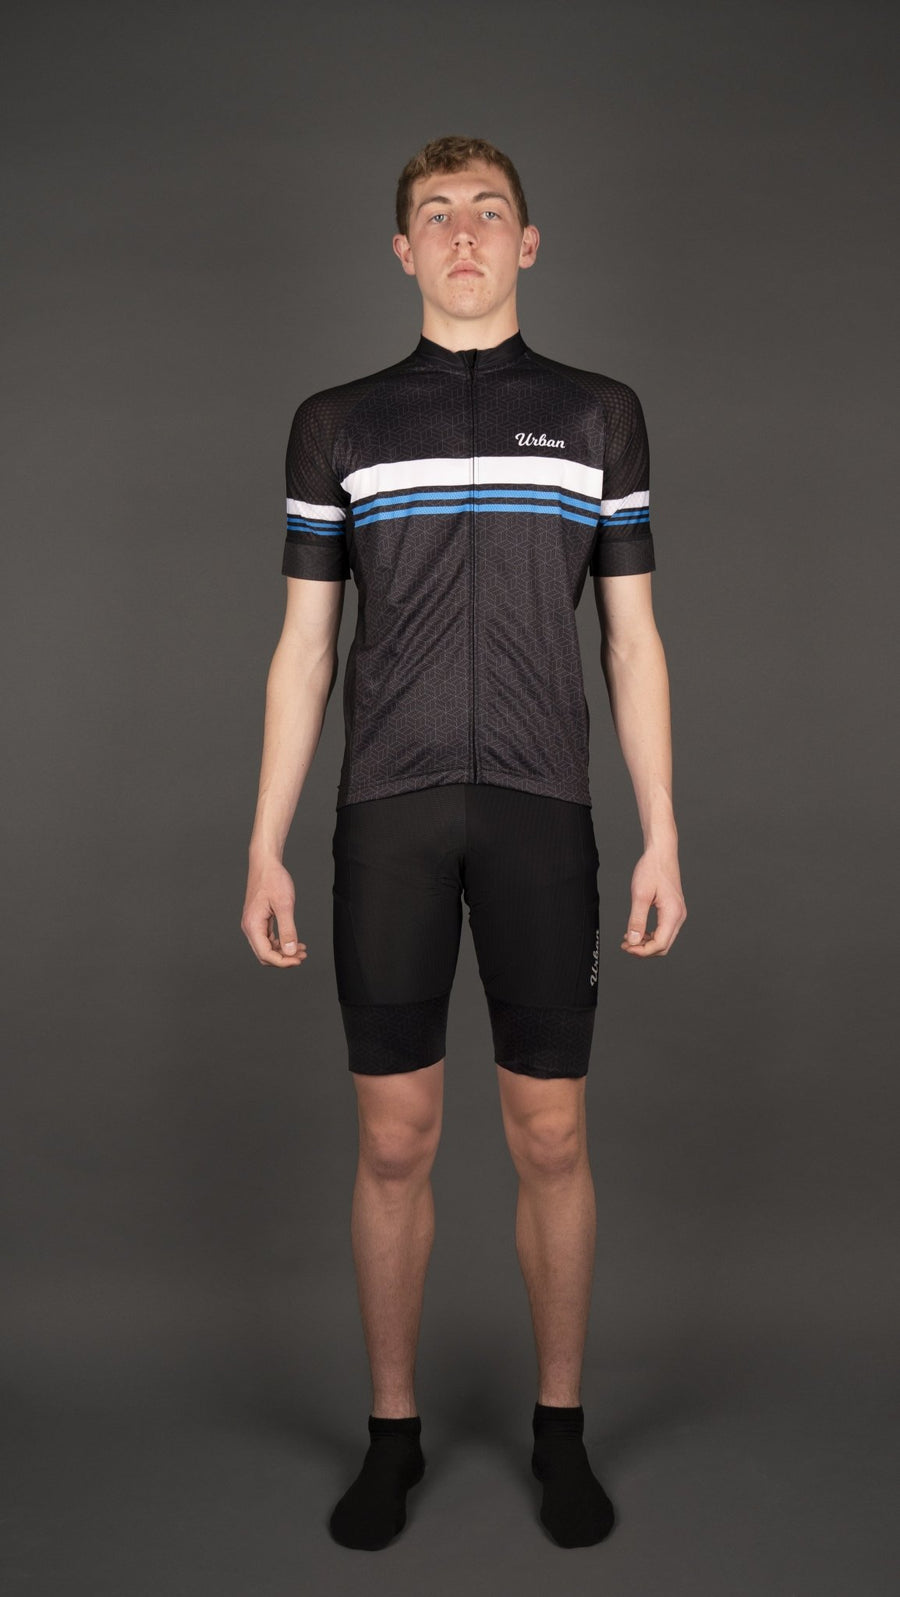 Men's Classic Black Short Sleeve Jersey, Bib Shorts - Urban Cycling Apparel